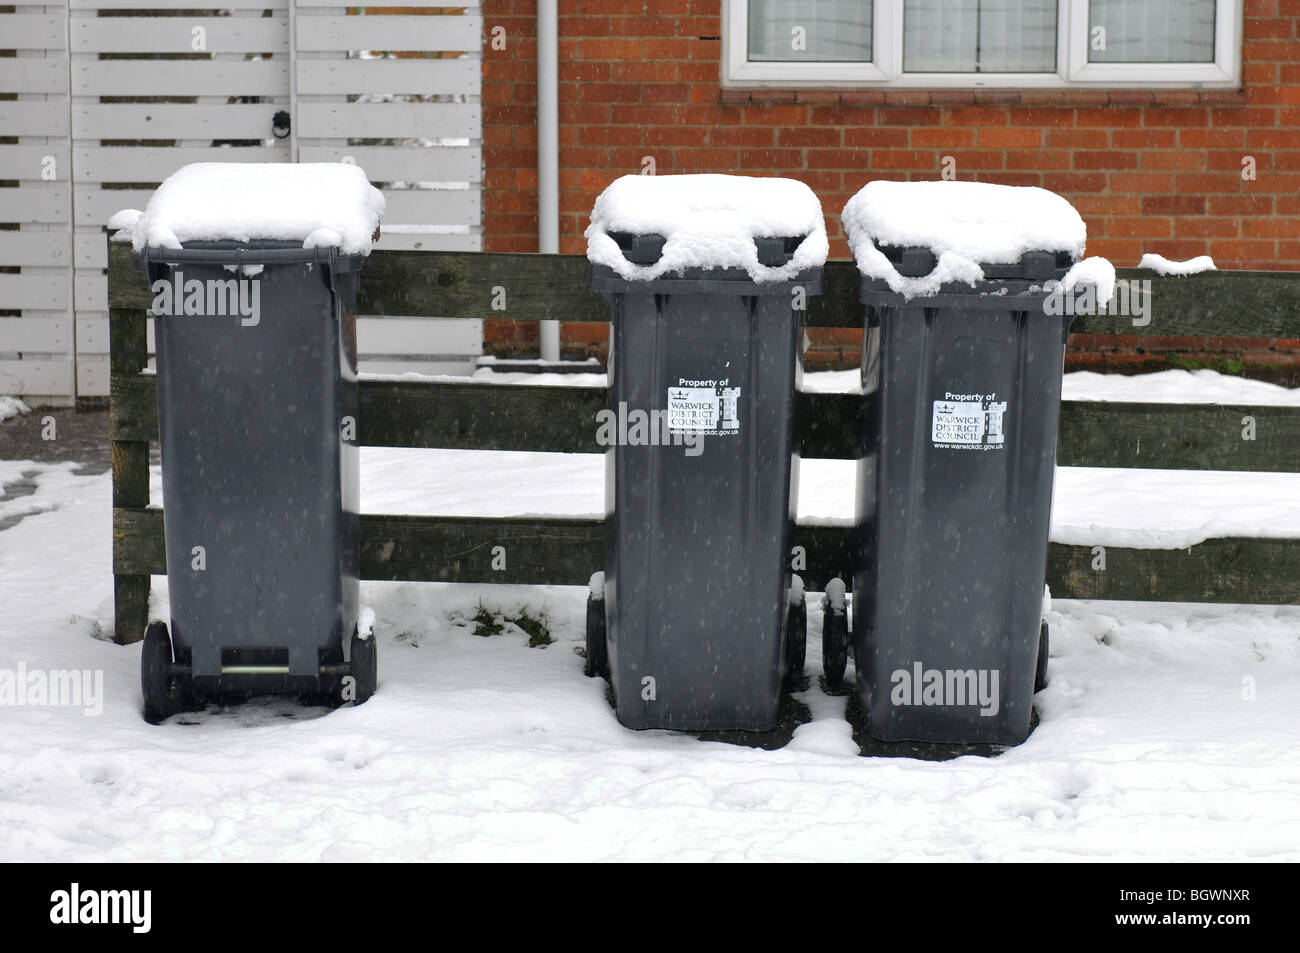 Domestic non-recyclable material bins put out for emptying in snowy weather, UK Stock Photo